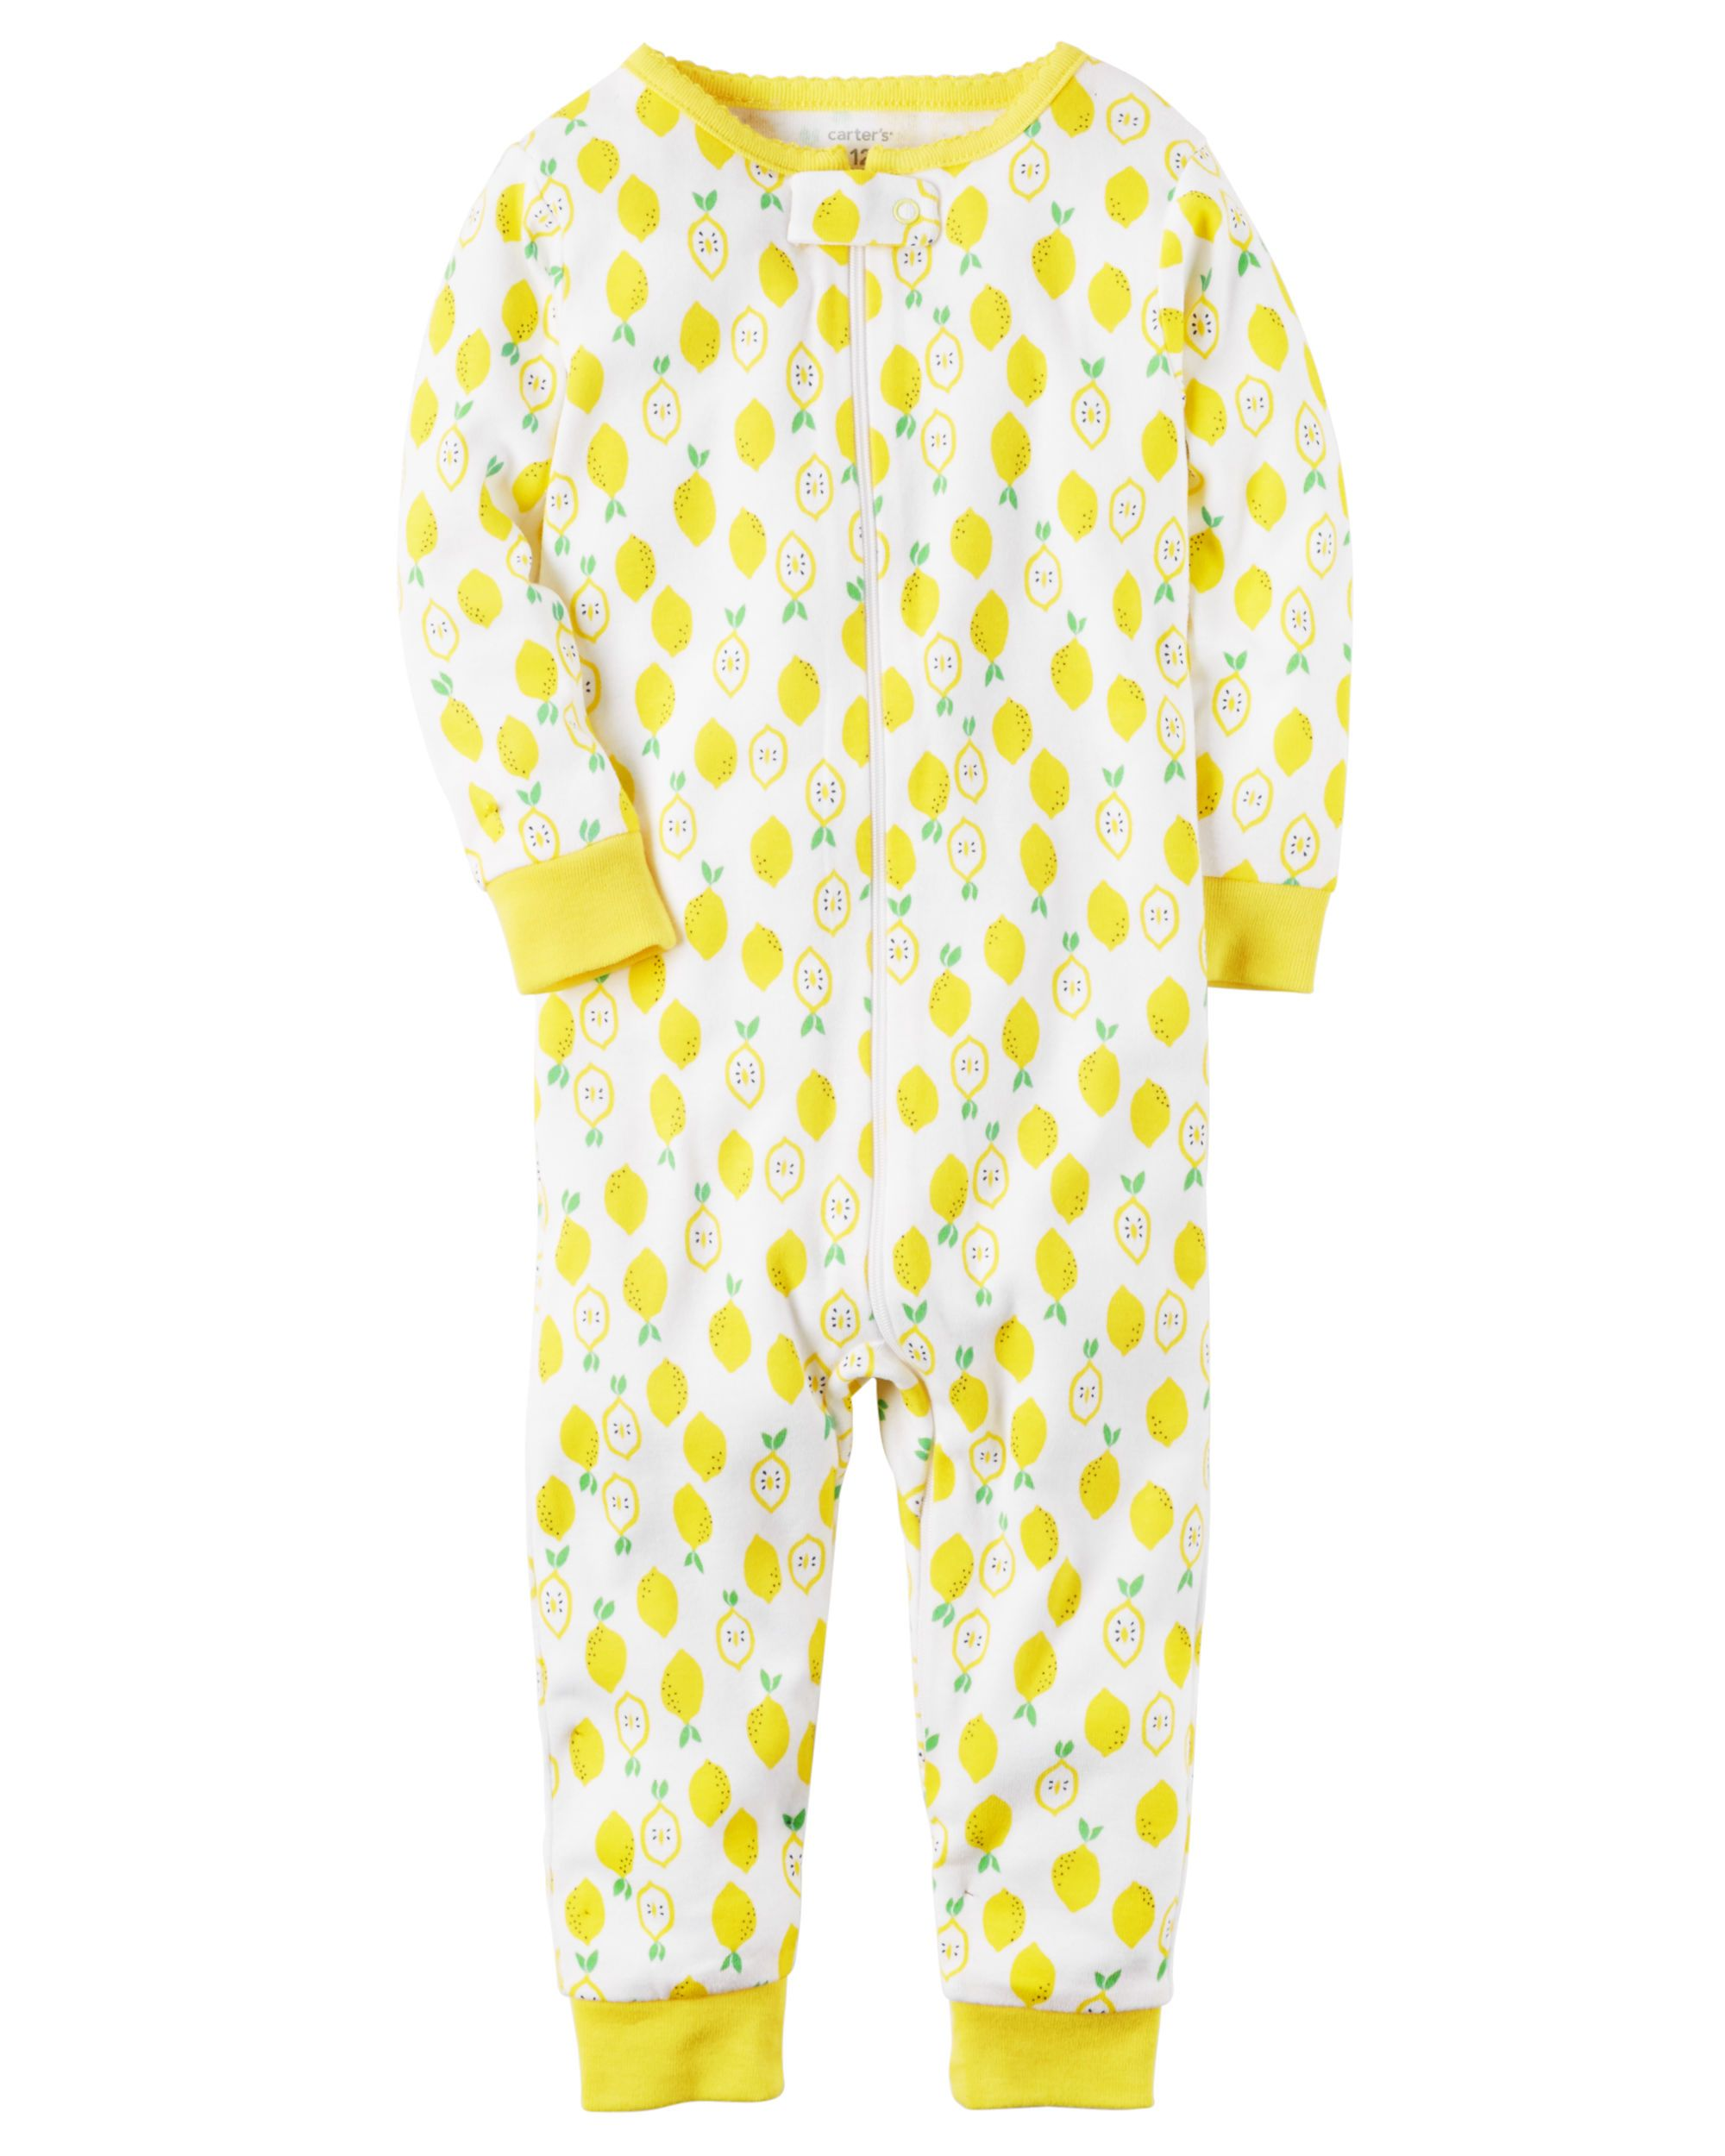 Baby Girl 1-Piece Snug Fit Cotton Footless PJs Crafted in supersoft cotton b95b182bf